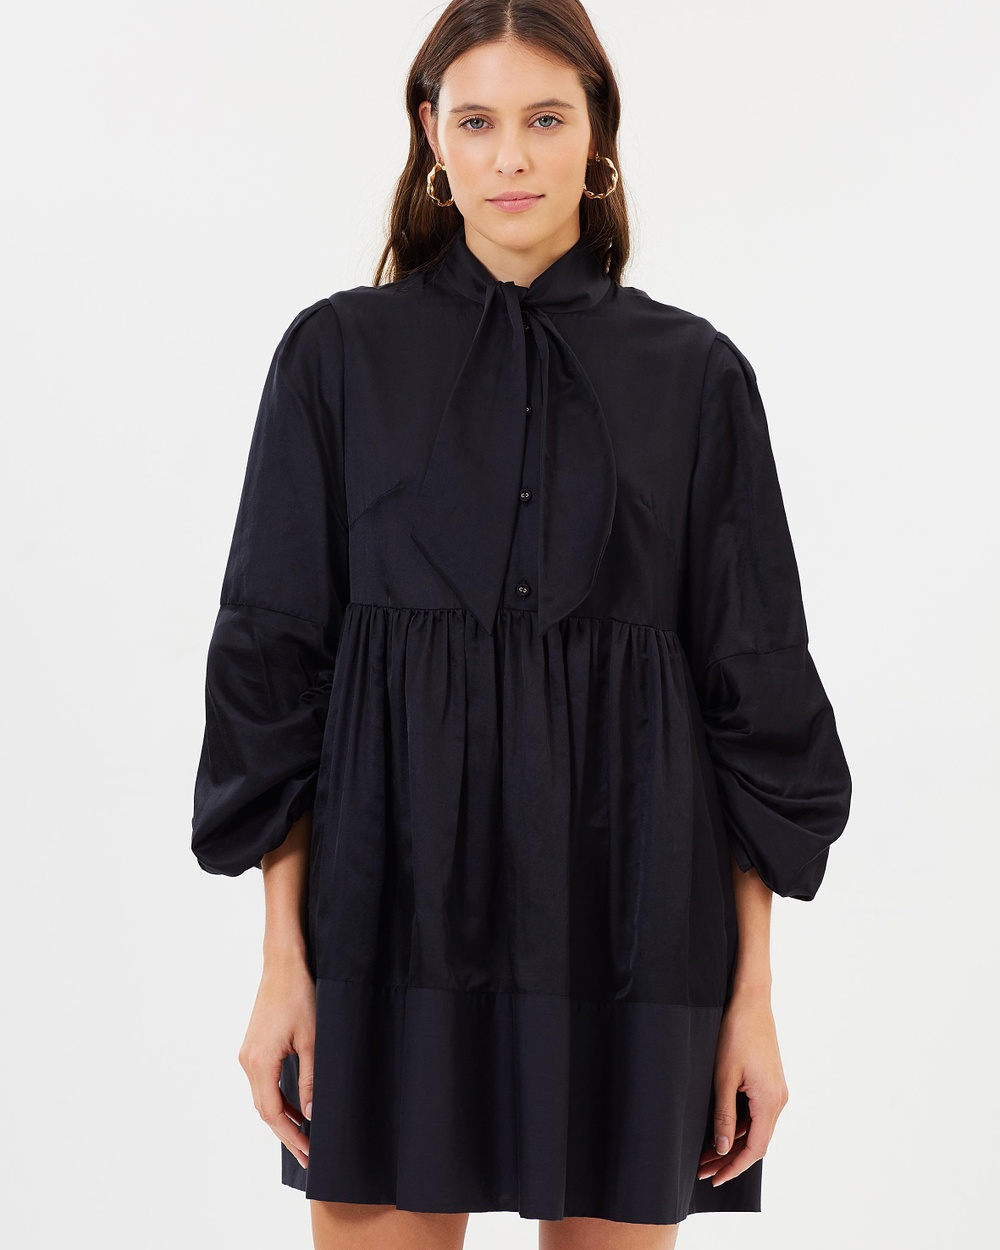 Karen Walker Postcard Tie Dress Dresses Black Postcard Tie Dress